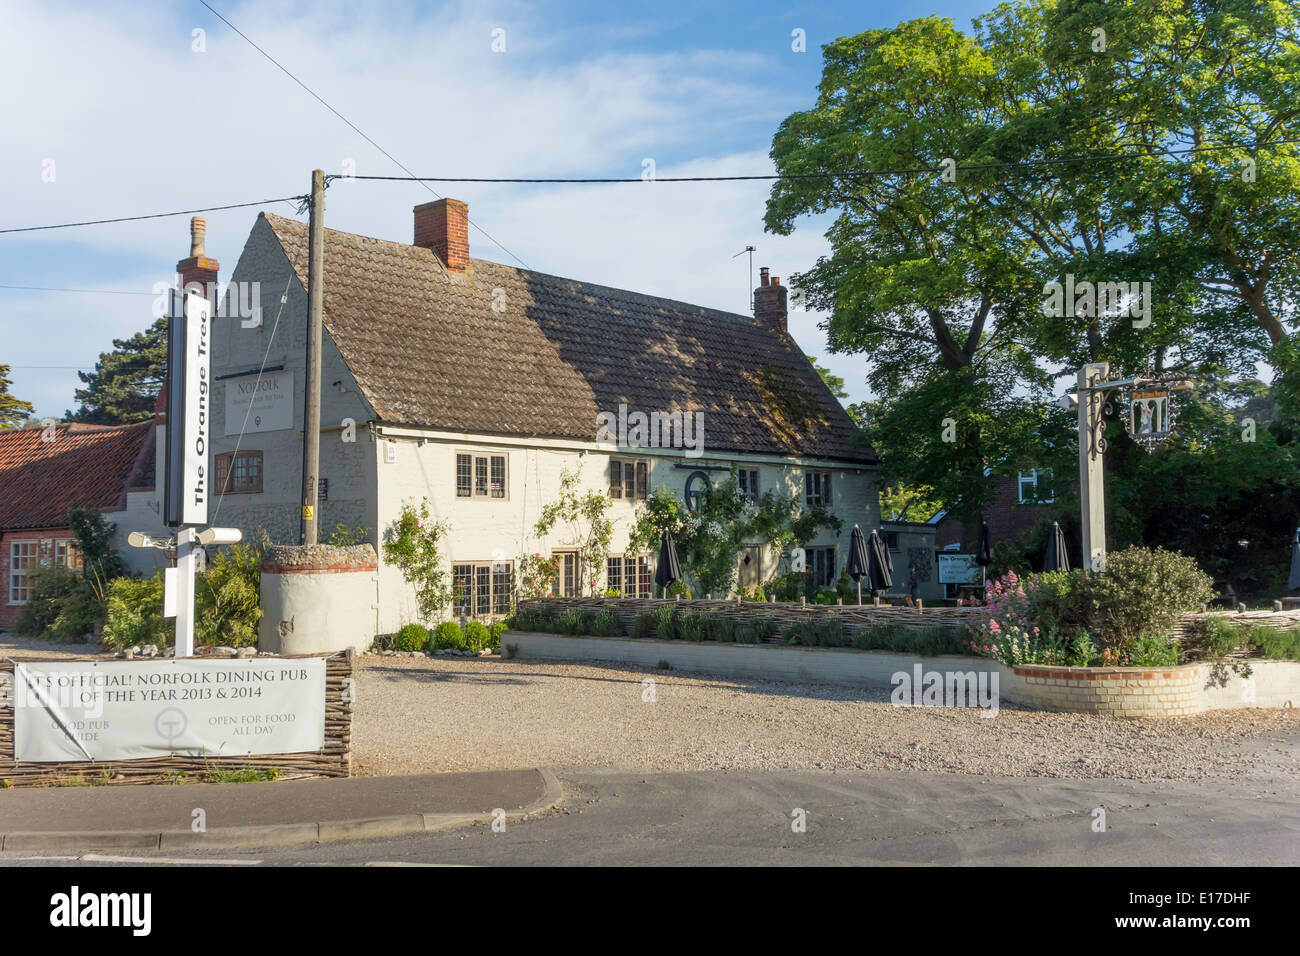 Stock Photo   The Orange Tree Thornham Good Pub Guide Norfolk Dining Pub Of  The Year 2013 And 2014